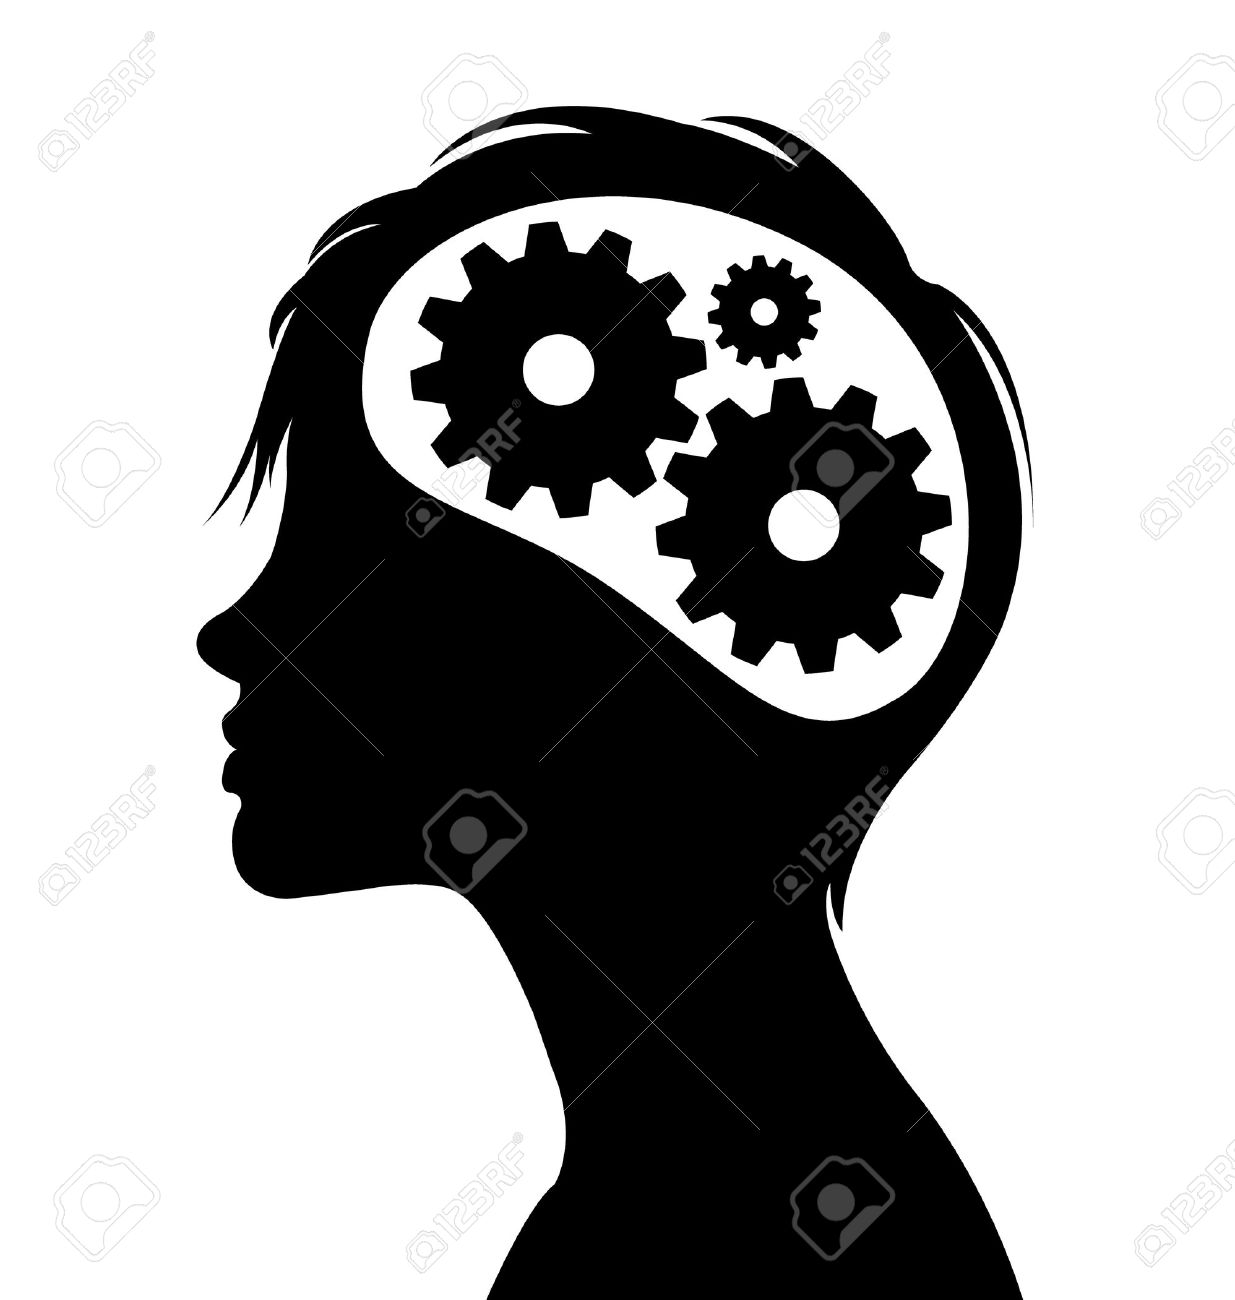 Woman silhouette with thinking brain gears in her head Stock Vector - 11294412